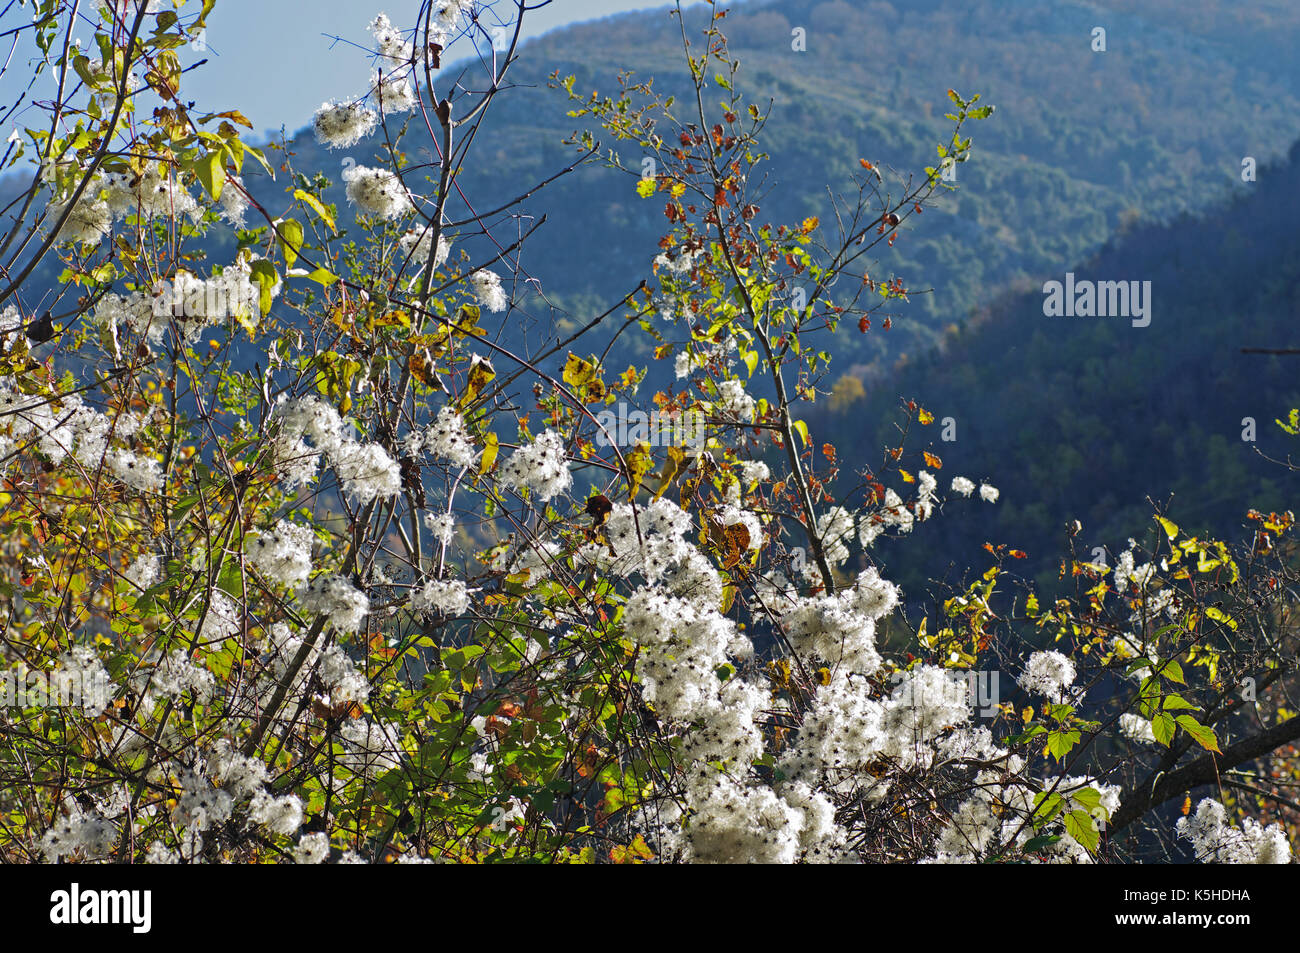 Clematis vitalba, the 'Old man's beard' or 'treveller's Joy', it produces seeds that are wind dispersed, Aurunci mountains, Esperia, Italy - Stock Image